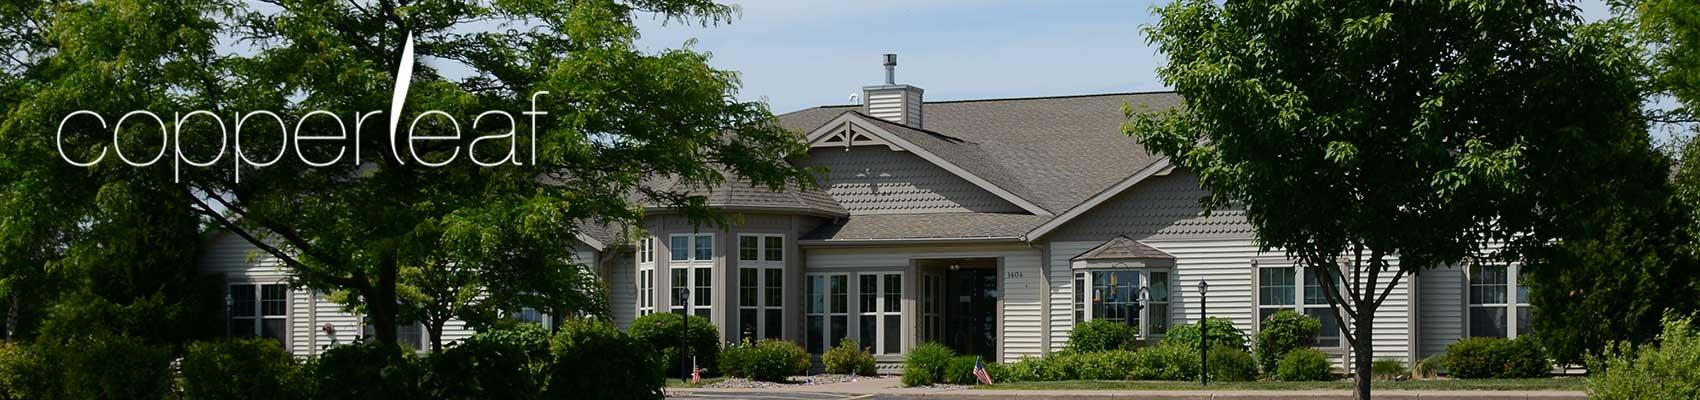 Assisted Living assisted living facilities Belmont Wisconsin Portage County